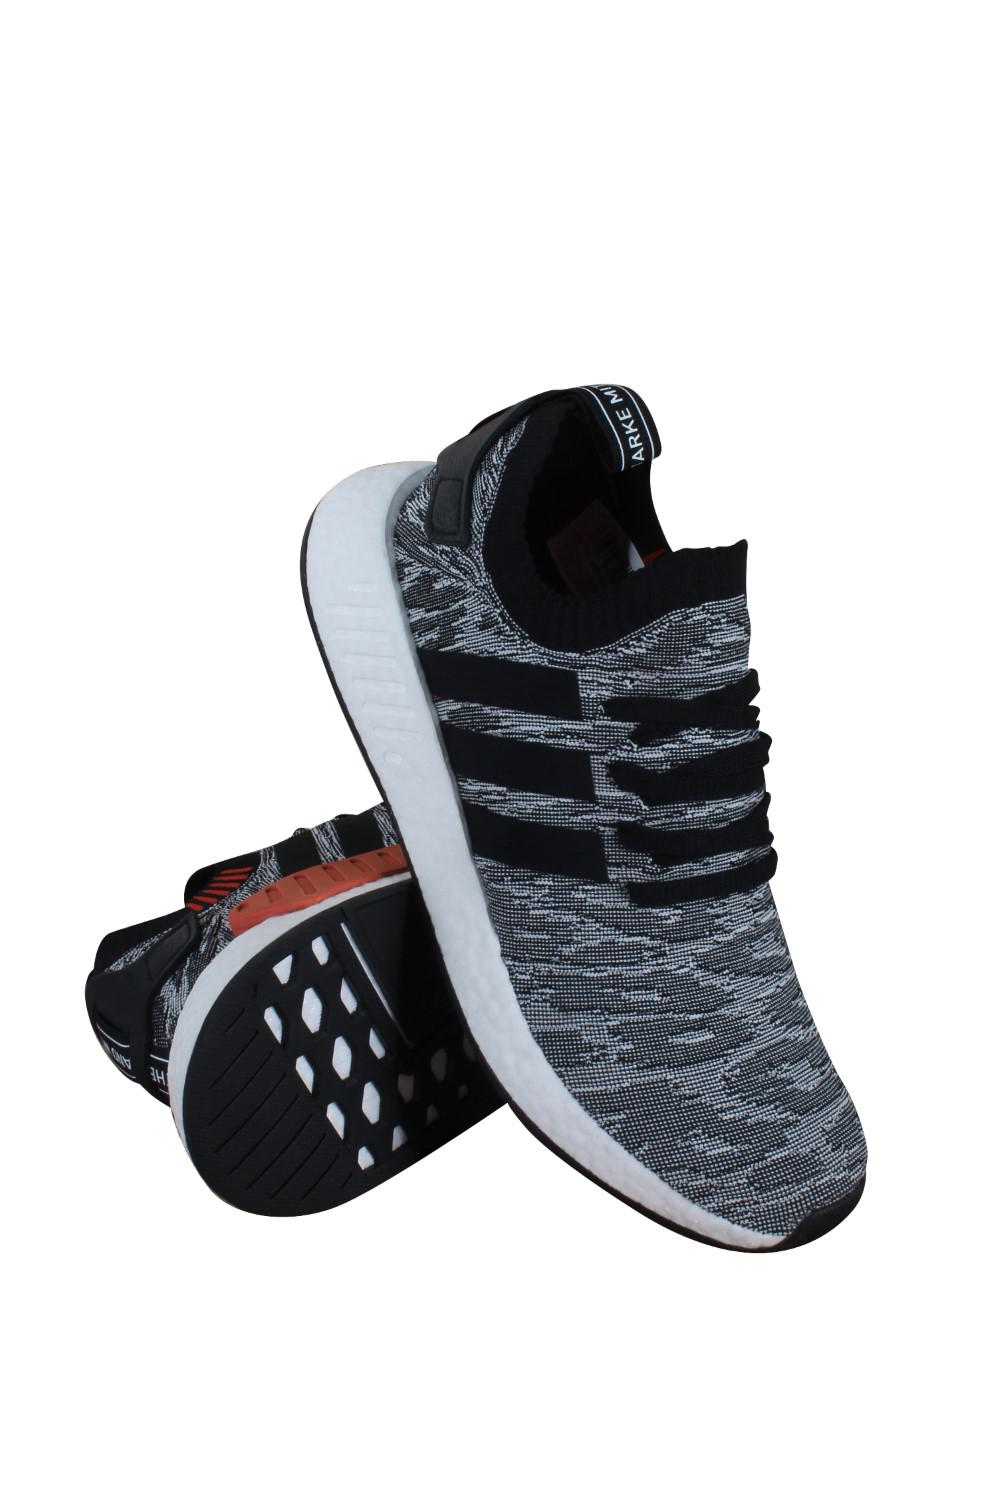 de5efb9a3c28c Sports   Outdoors adidas Mens NMD r2 Pk Trainers BY9409